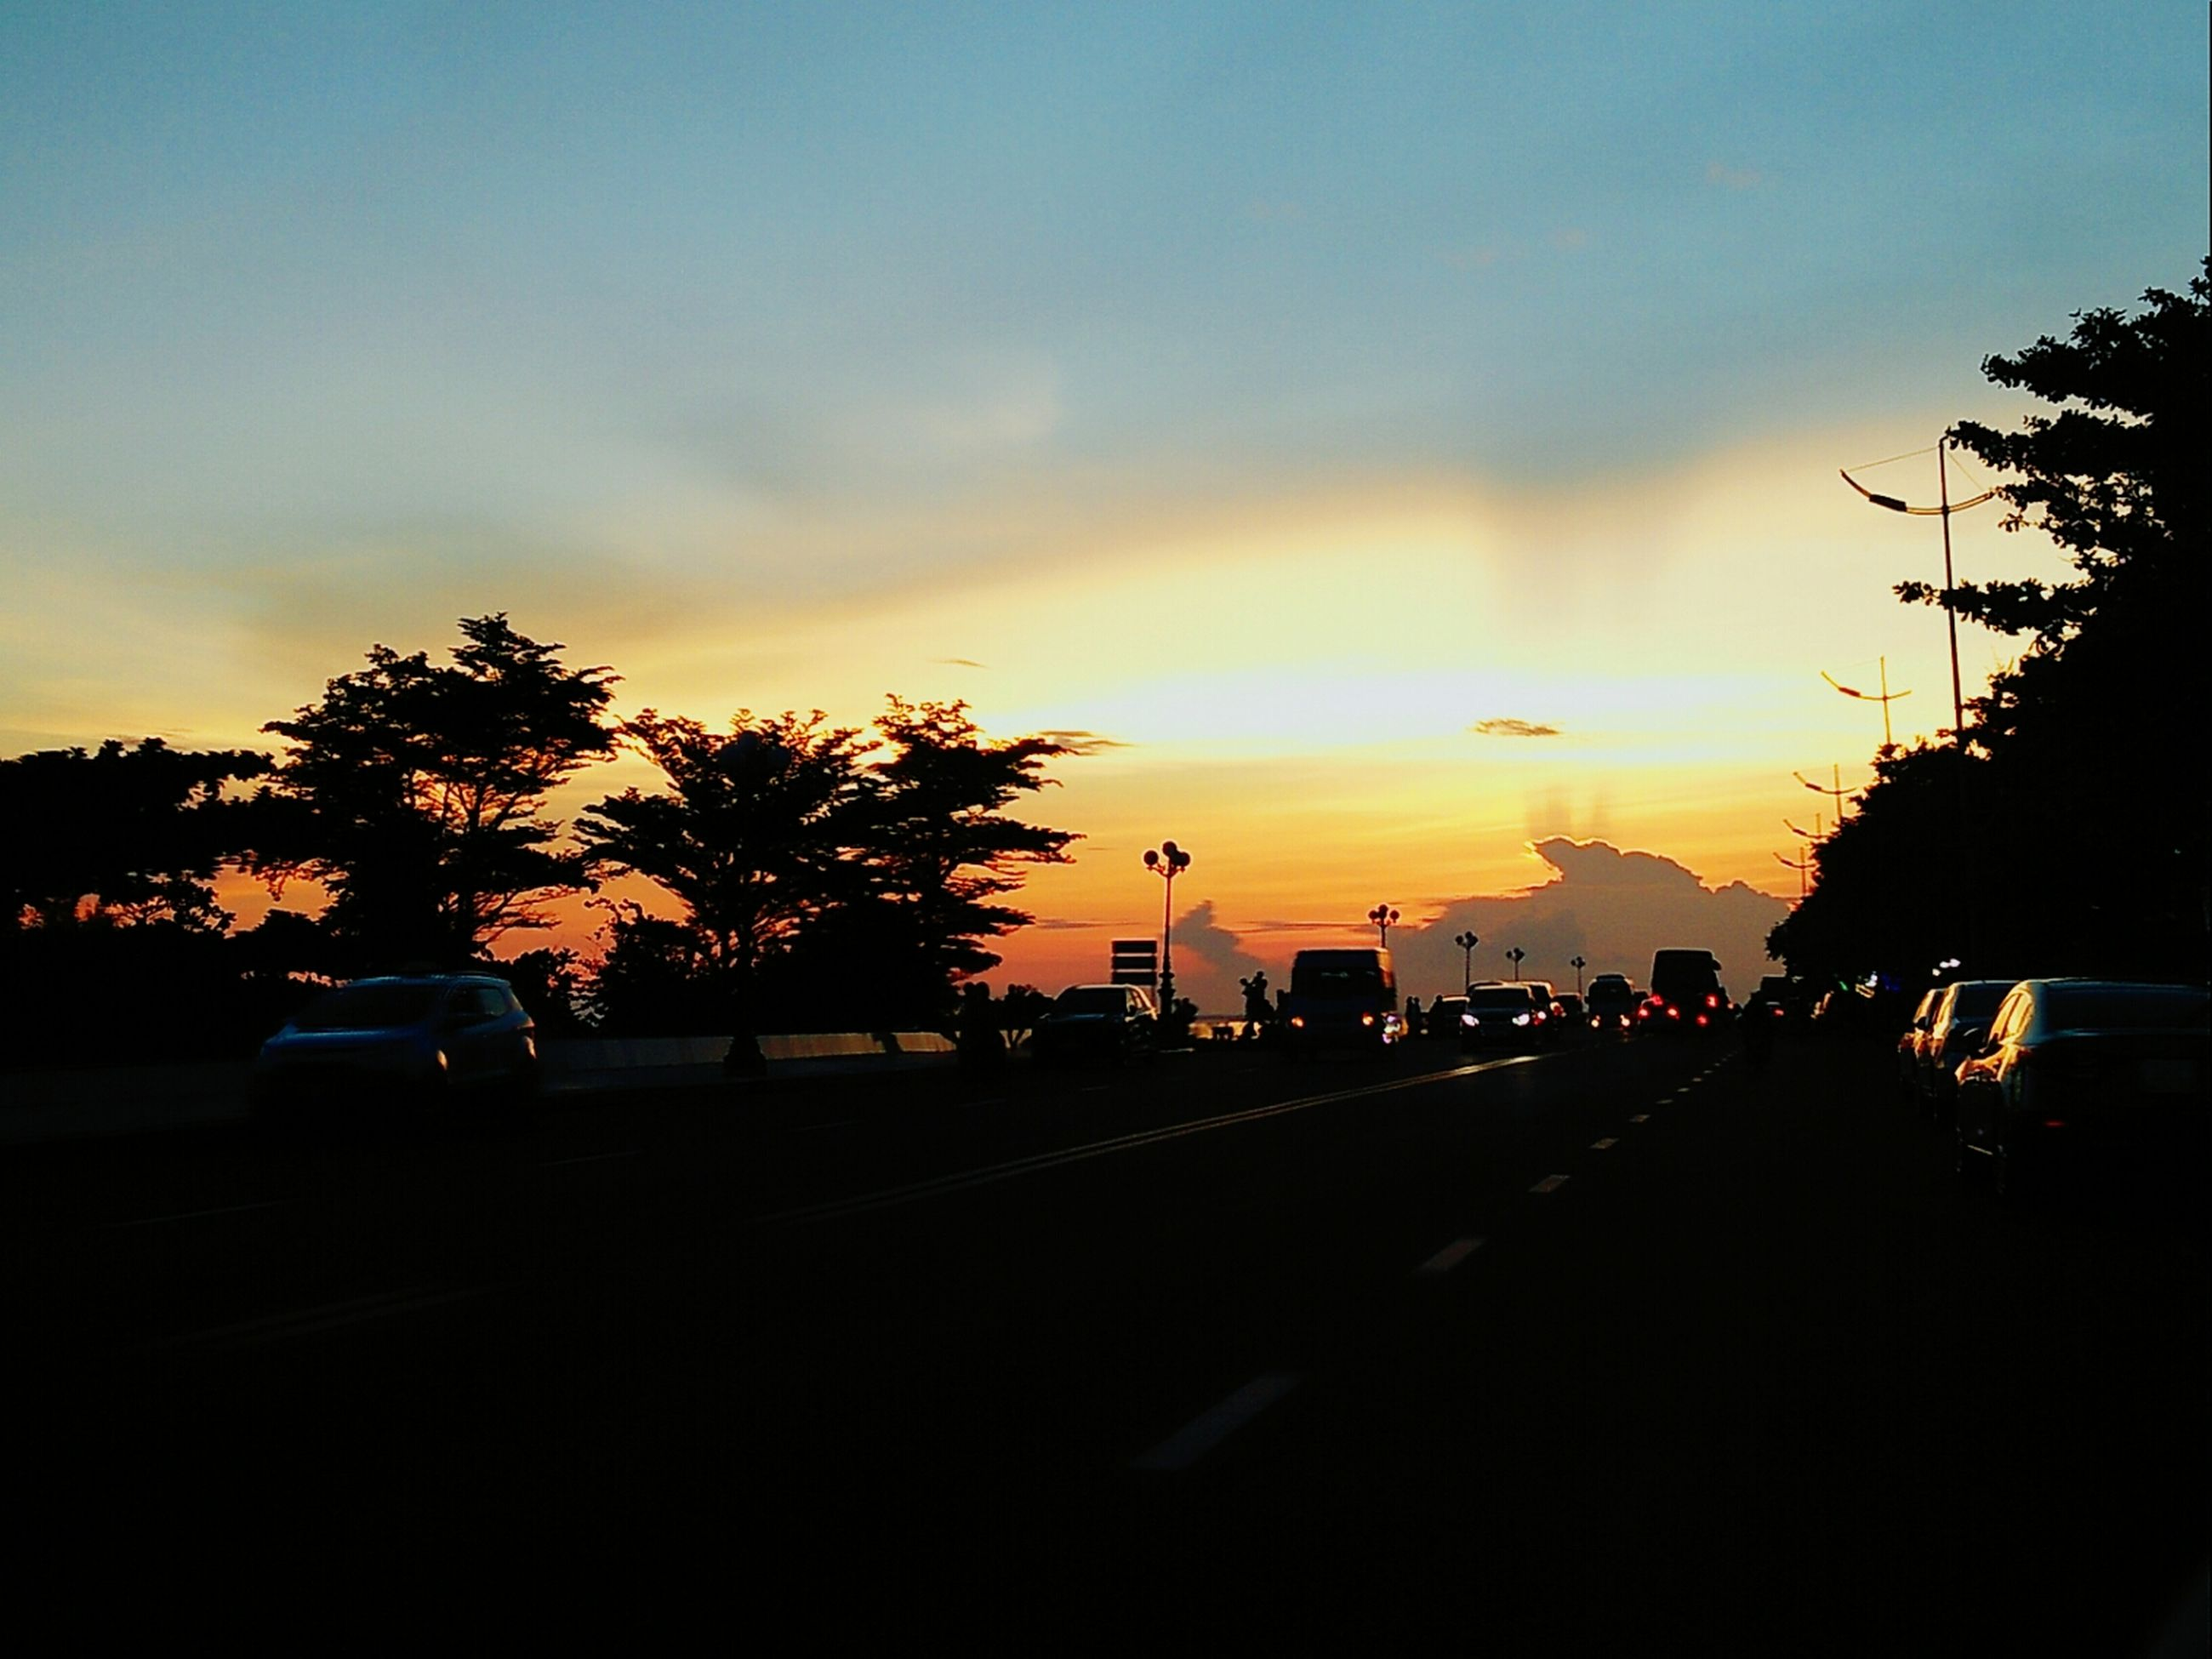 sunset, car, land vehicle, silhouette, traffic, tree, transportation, road, sky, city, no people, nature, outdoors